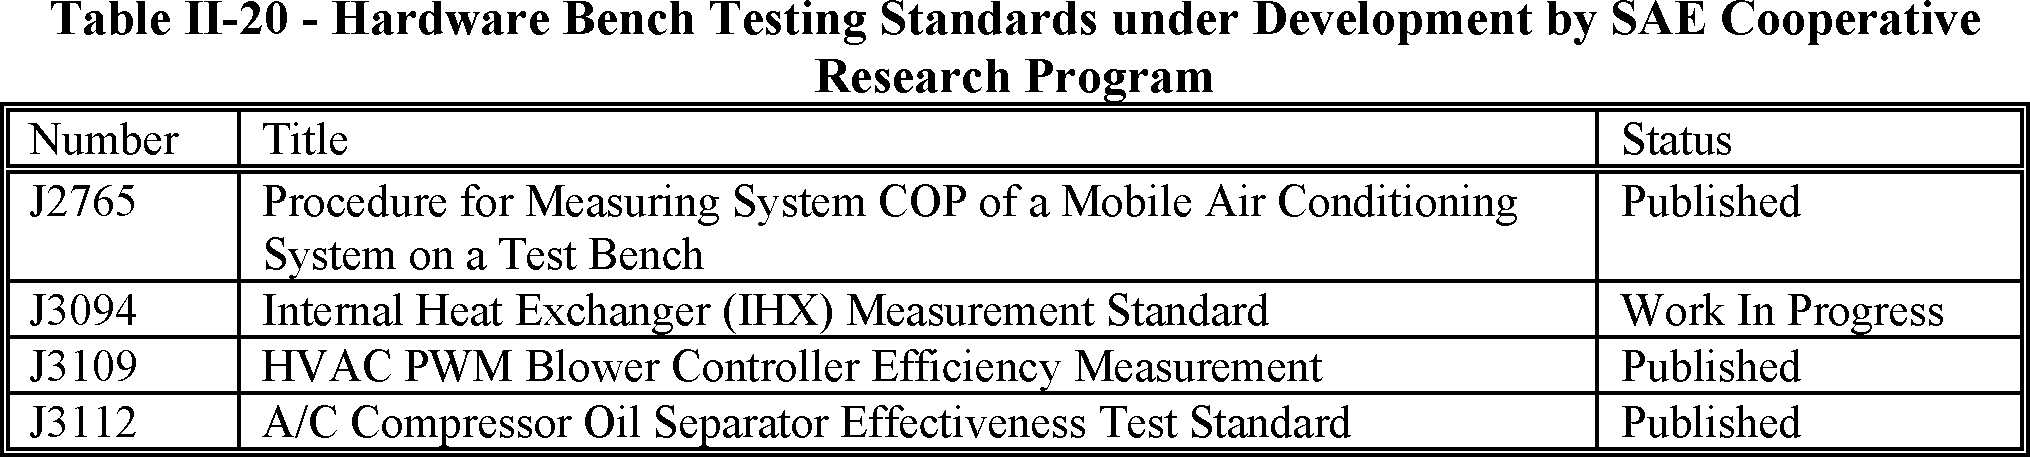 Federal Register The Safer Affordable Fuel Efficient Safe Sierra Dual Voltage Circuit Tester West Marine 2 A C Efficiency Technology Valuation Through Off Cycle Program